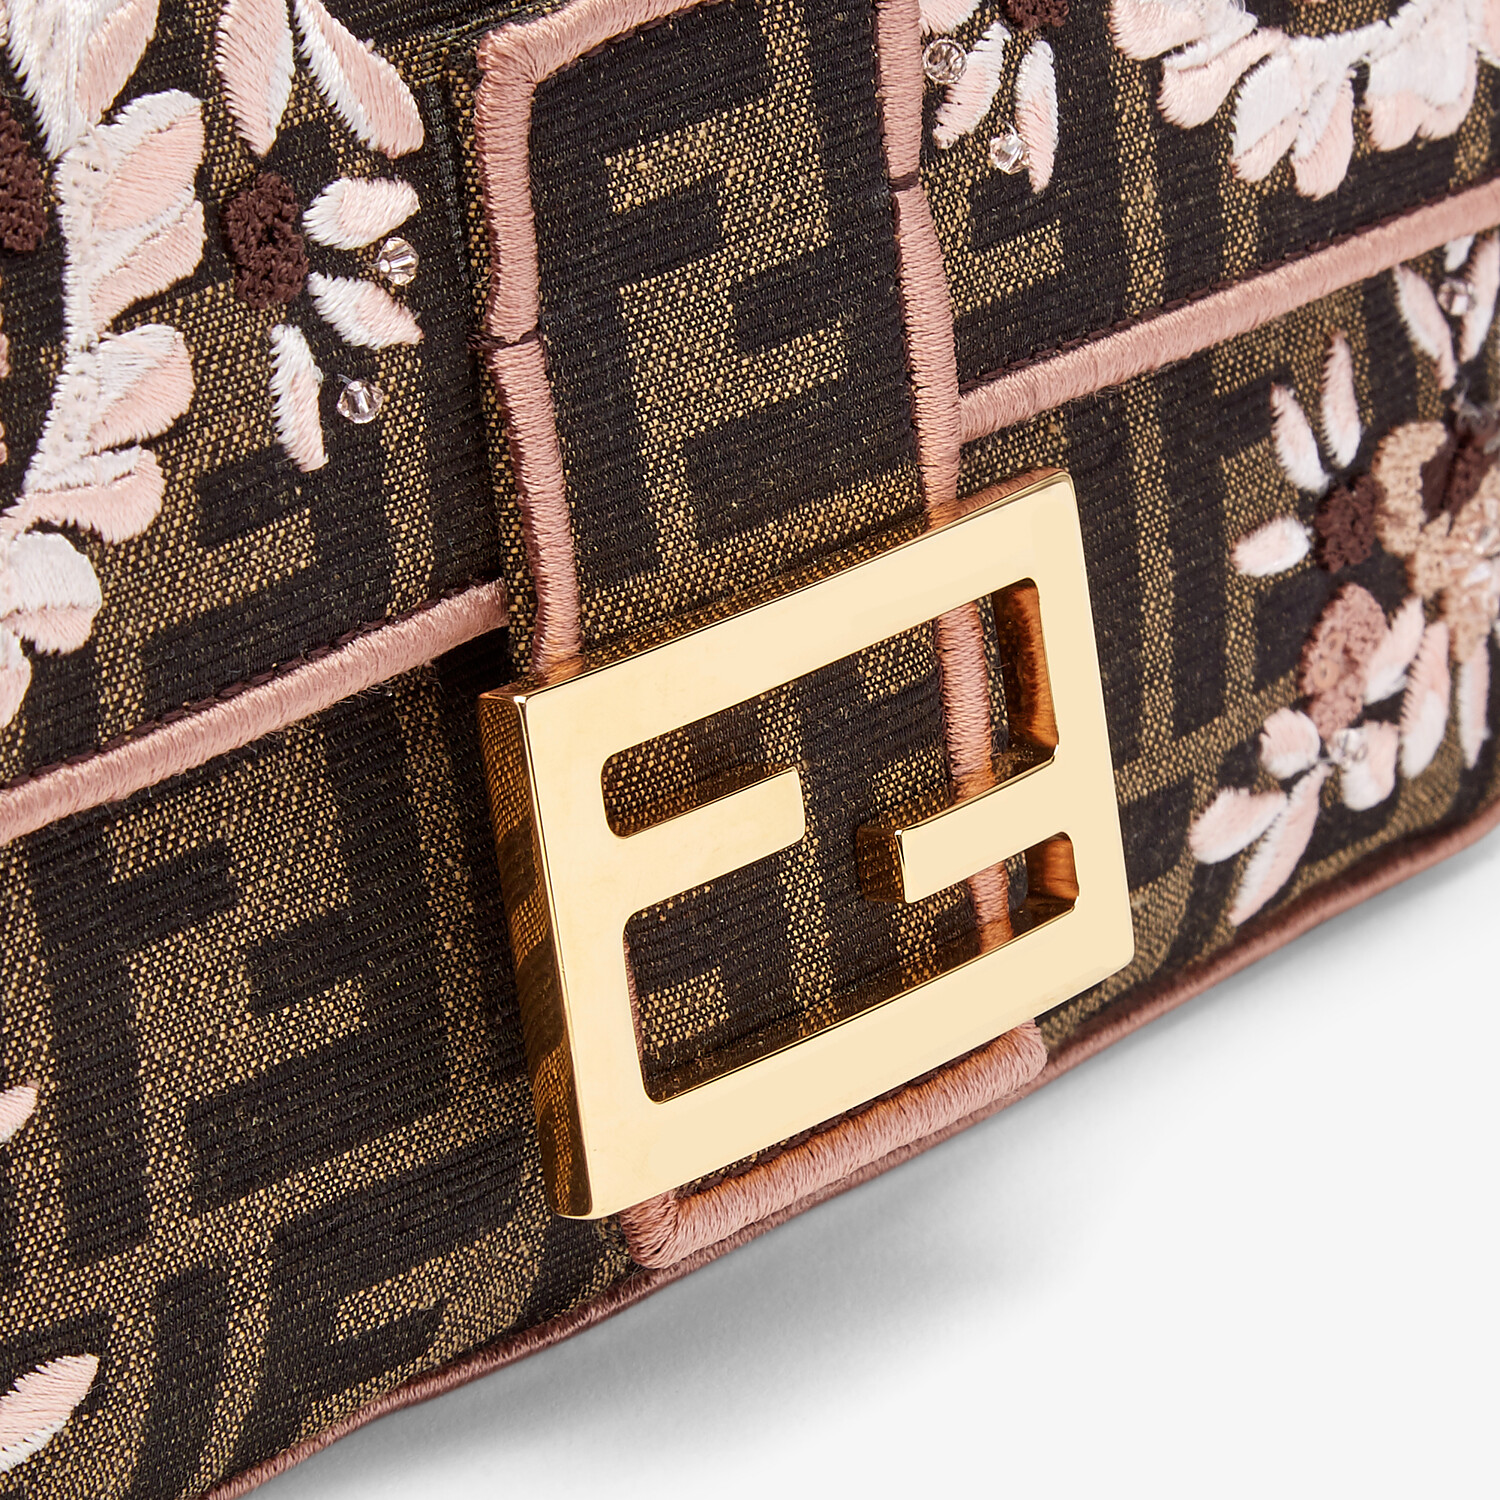 FENDI BAGUETTE - Embroidered FF fabric bag - view 6 detail